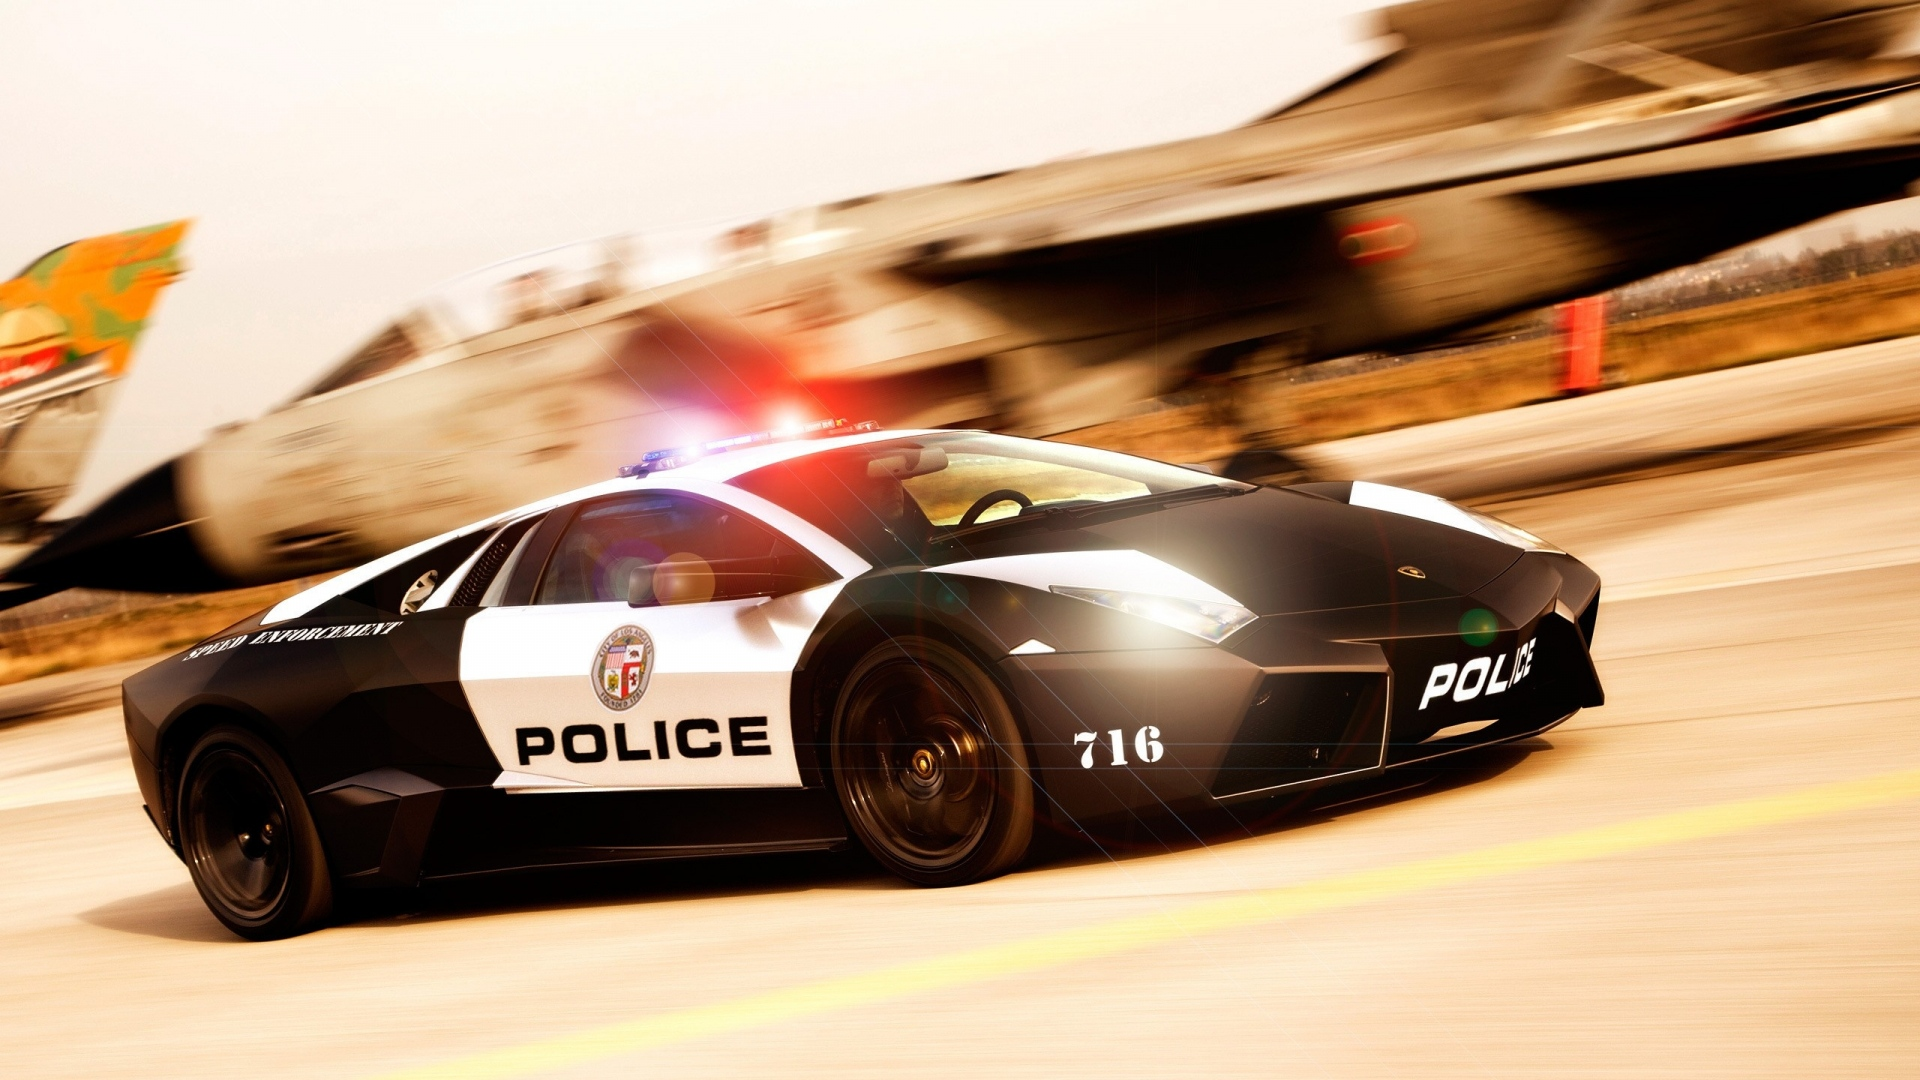 1920x1080-nfs-need-for-speed-police-airplanes-speed-wallpaper-wpc9001044